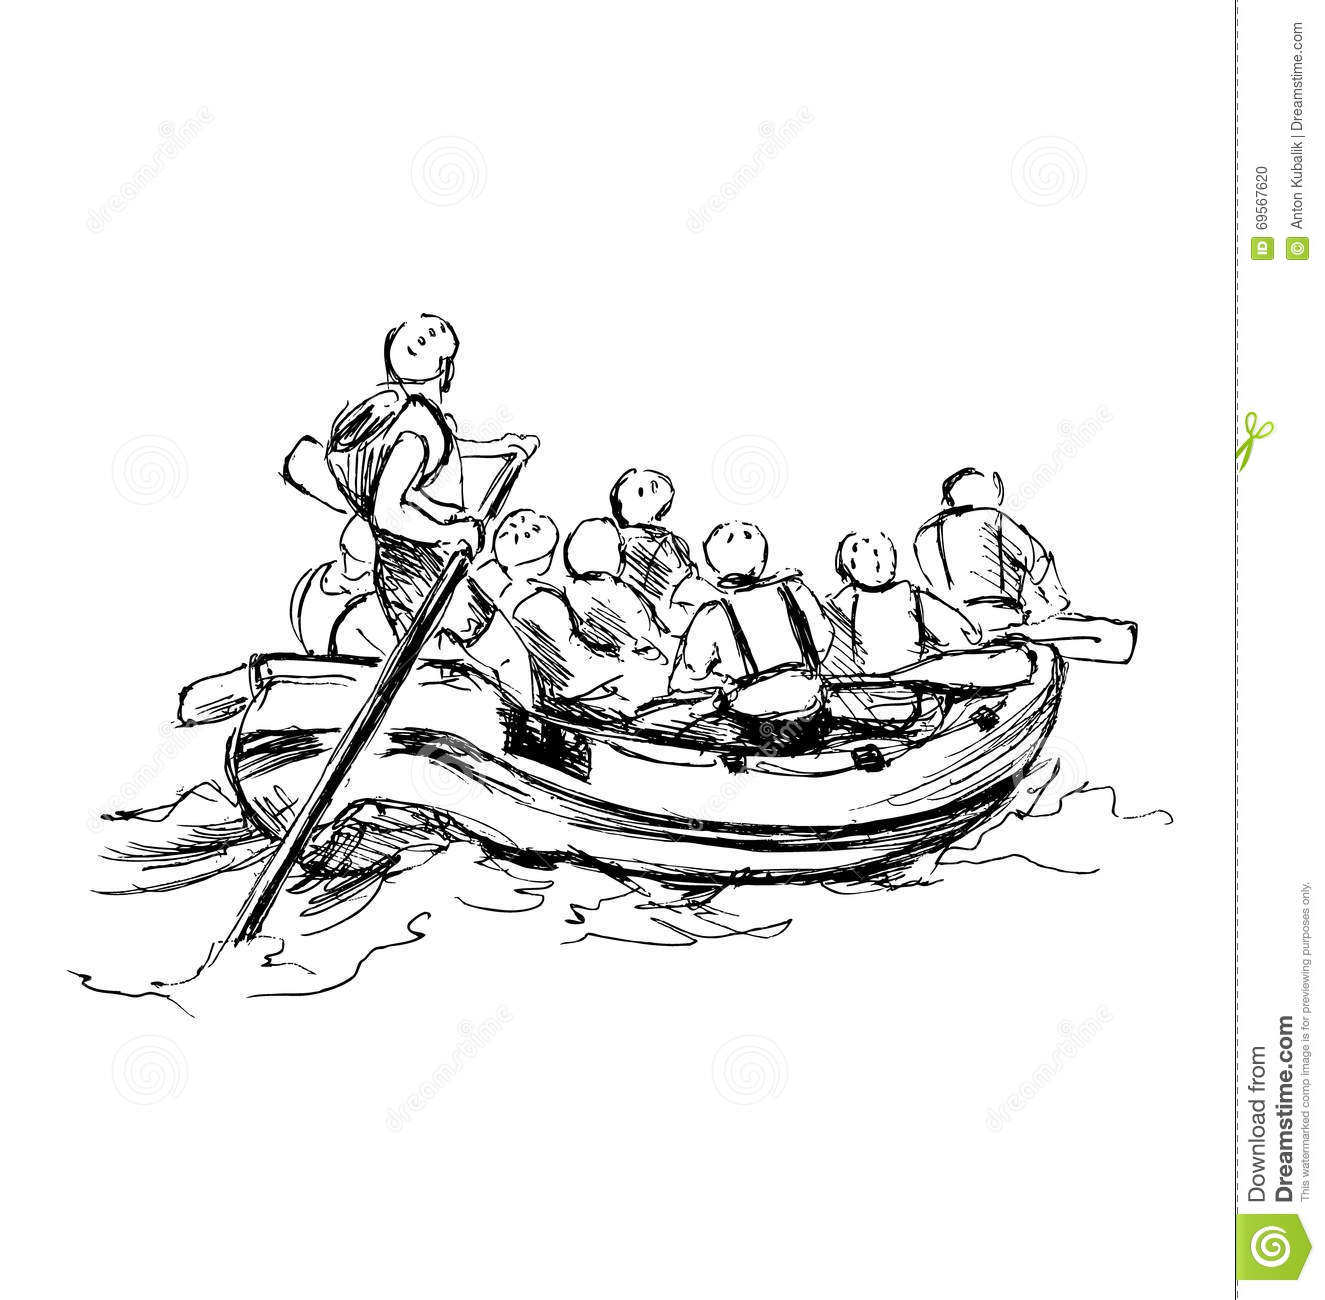 Hand Sketch Of People On A Raft Stock Vector